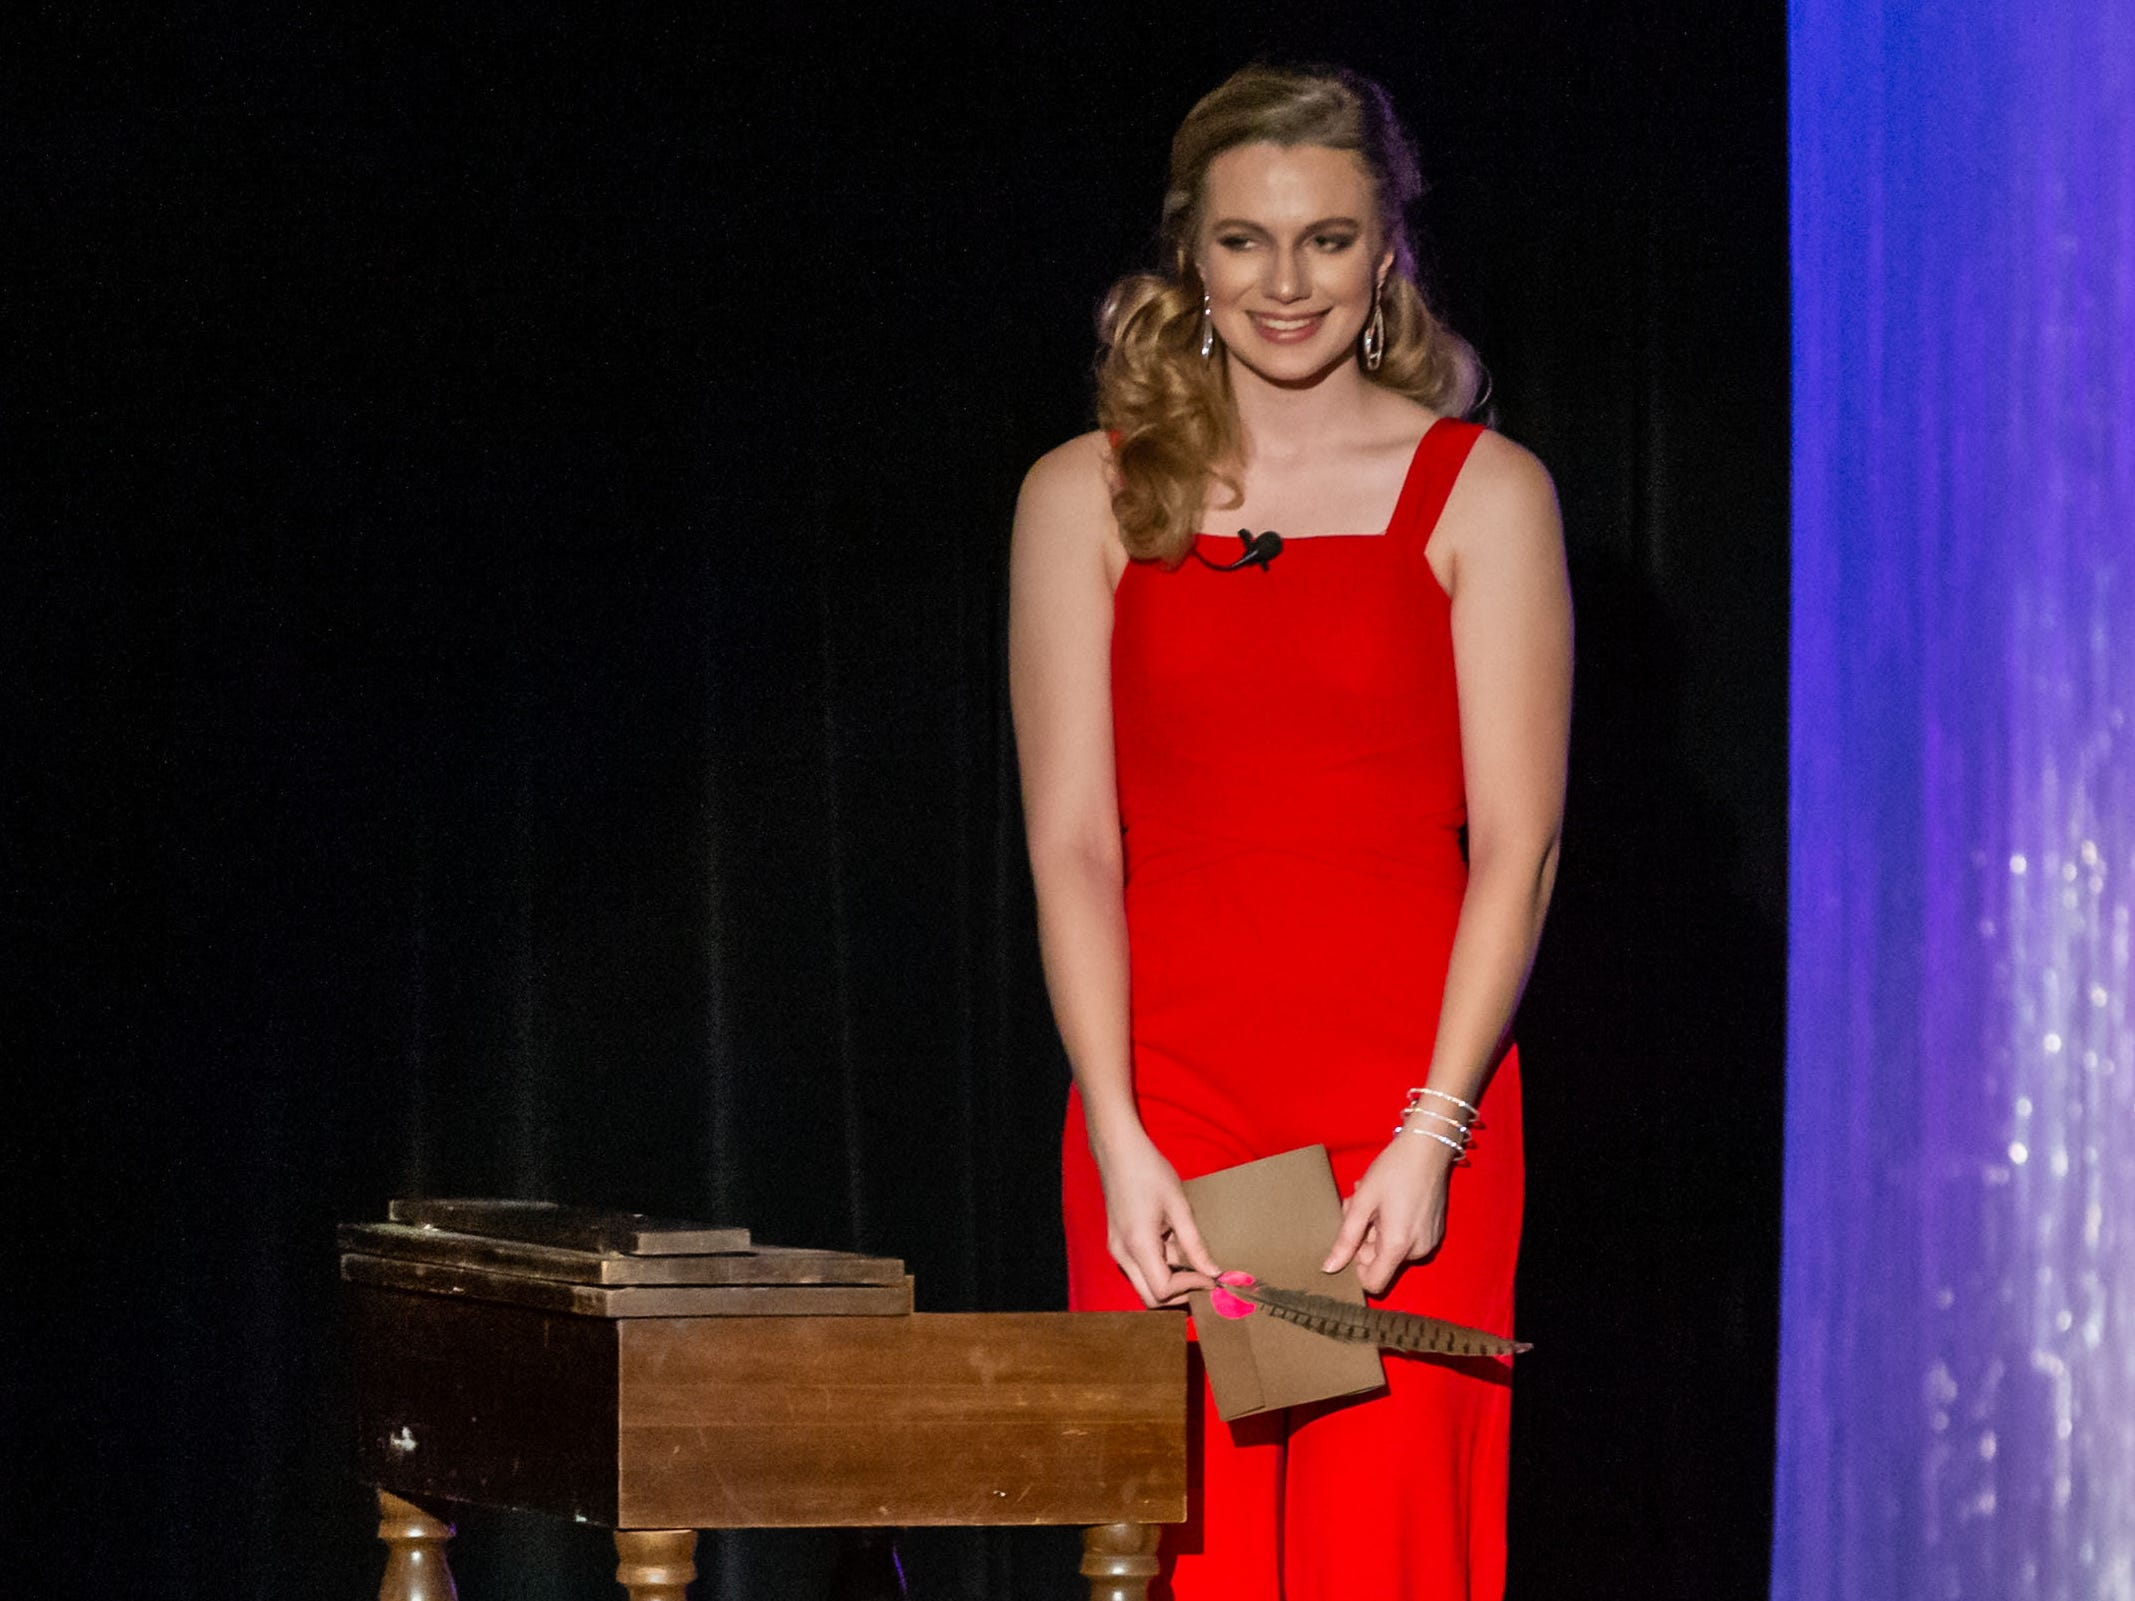 Katelyn Pomianek, sponsored by the St. Francis Lions Club, competes in the talent segment of the 55th annual Miss St. Francis Scholarship Competition at St. Thomas More High School on Saturday, Feb. 2, 2019.